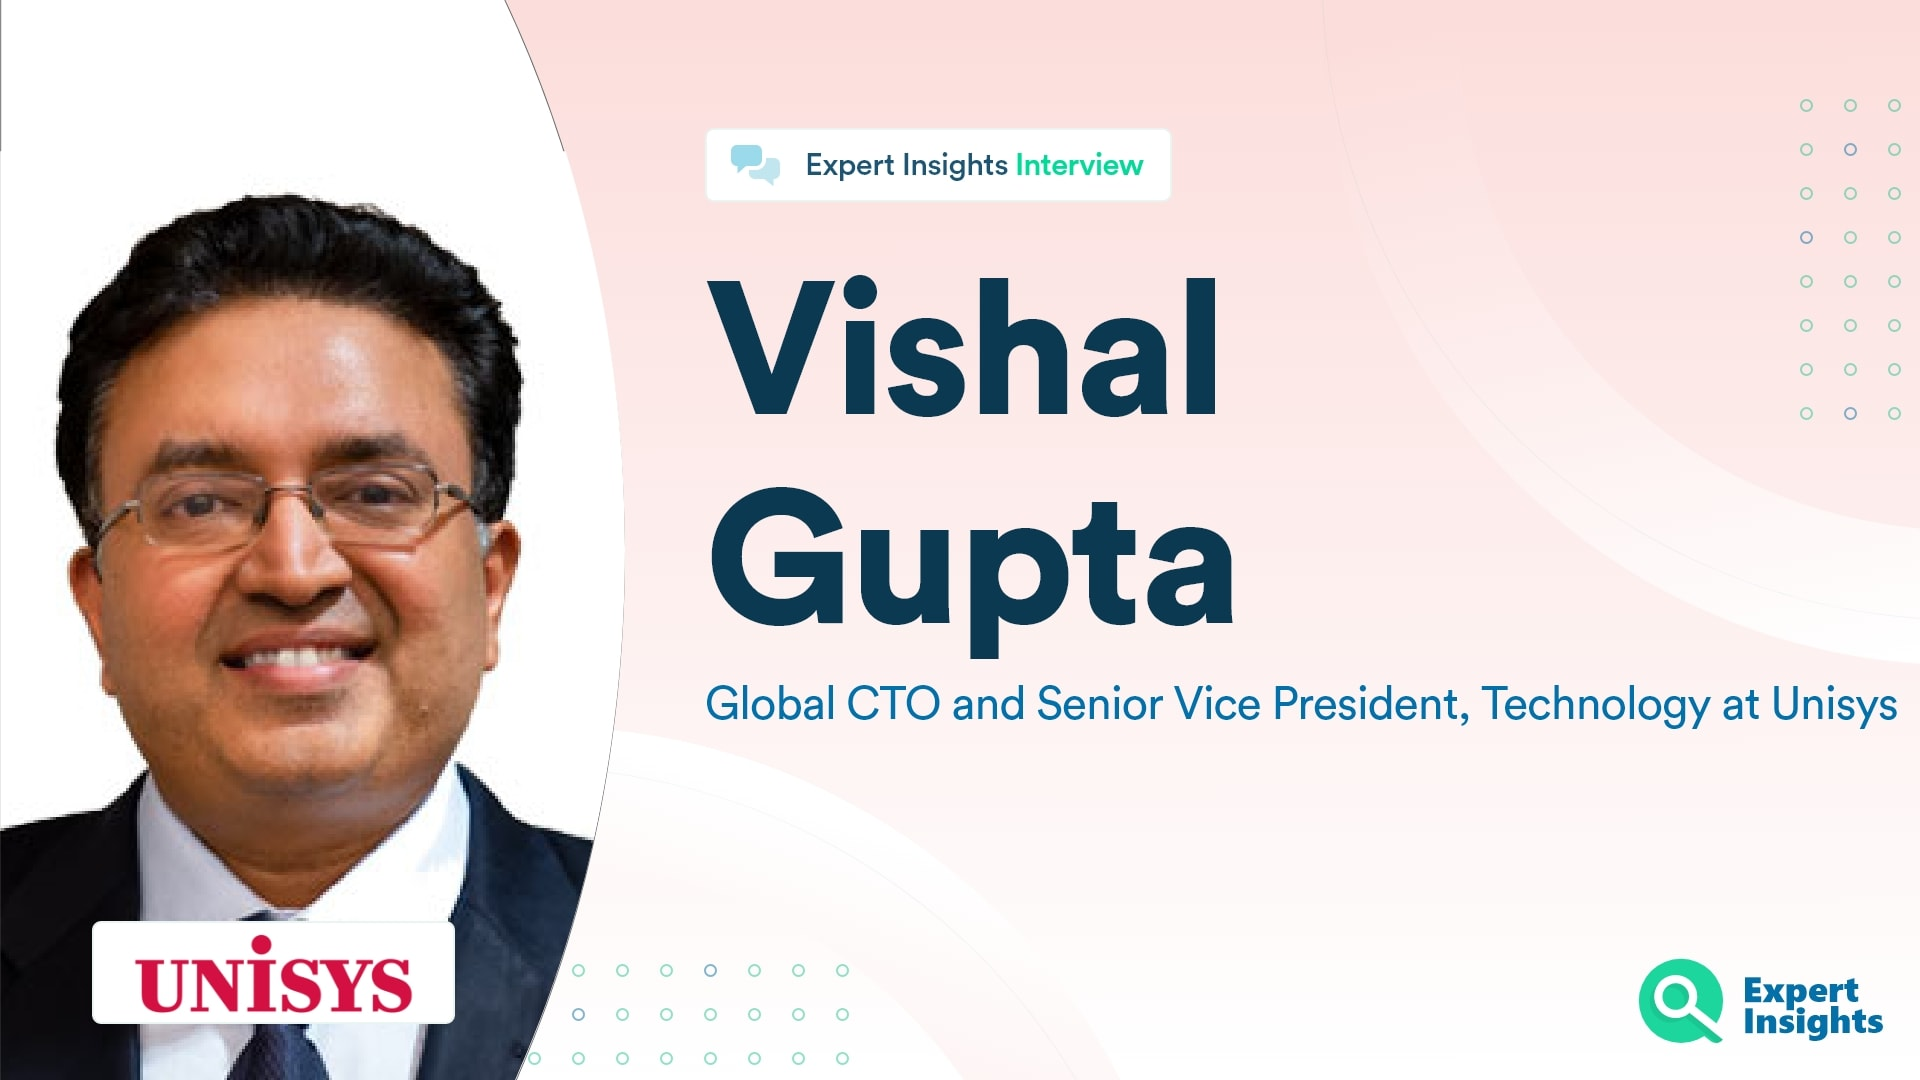 Expert Insights Interview With Vishal Gupta Of Unisys